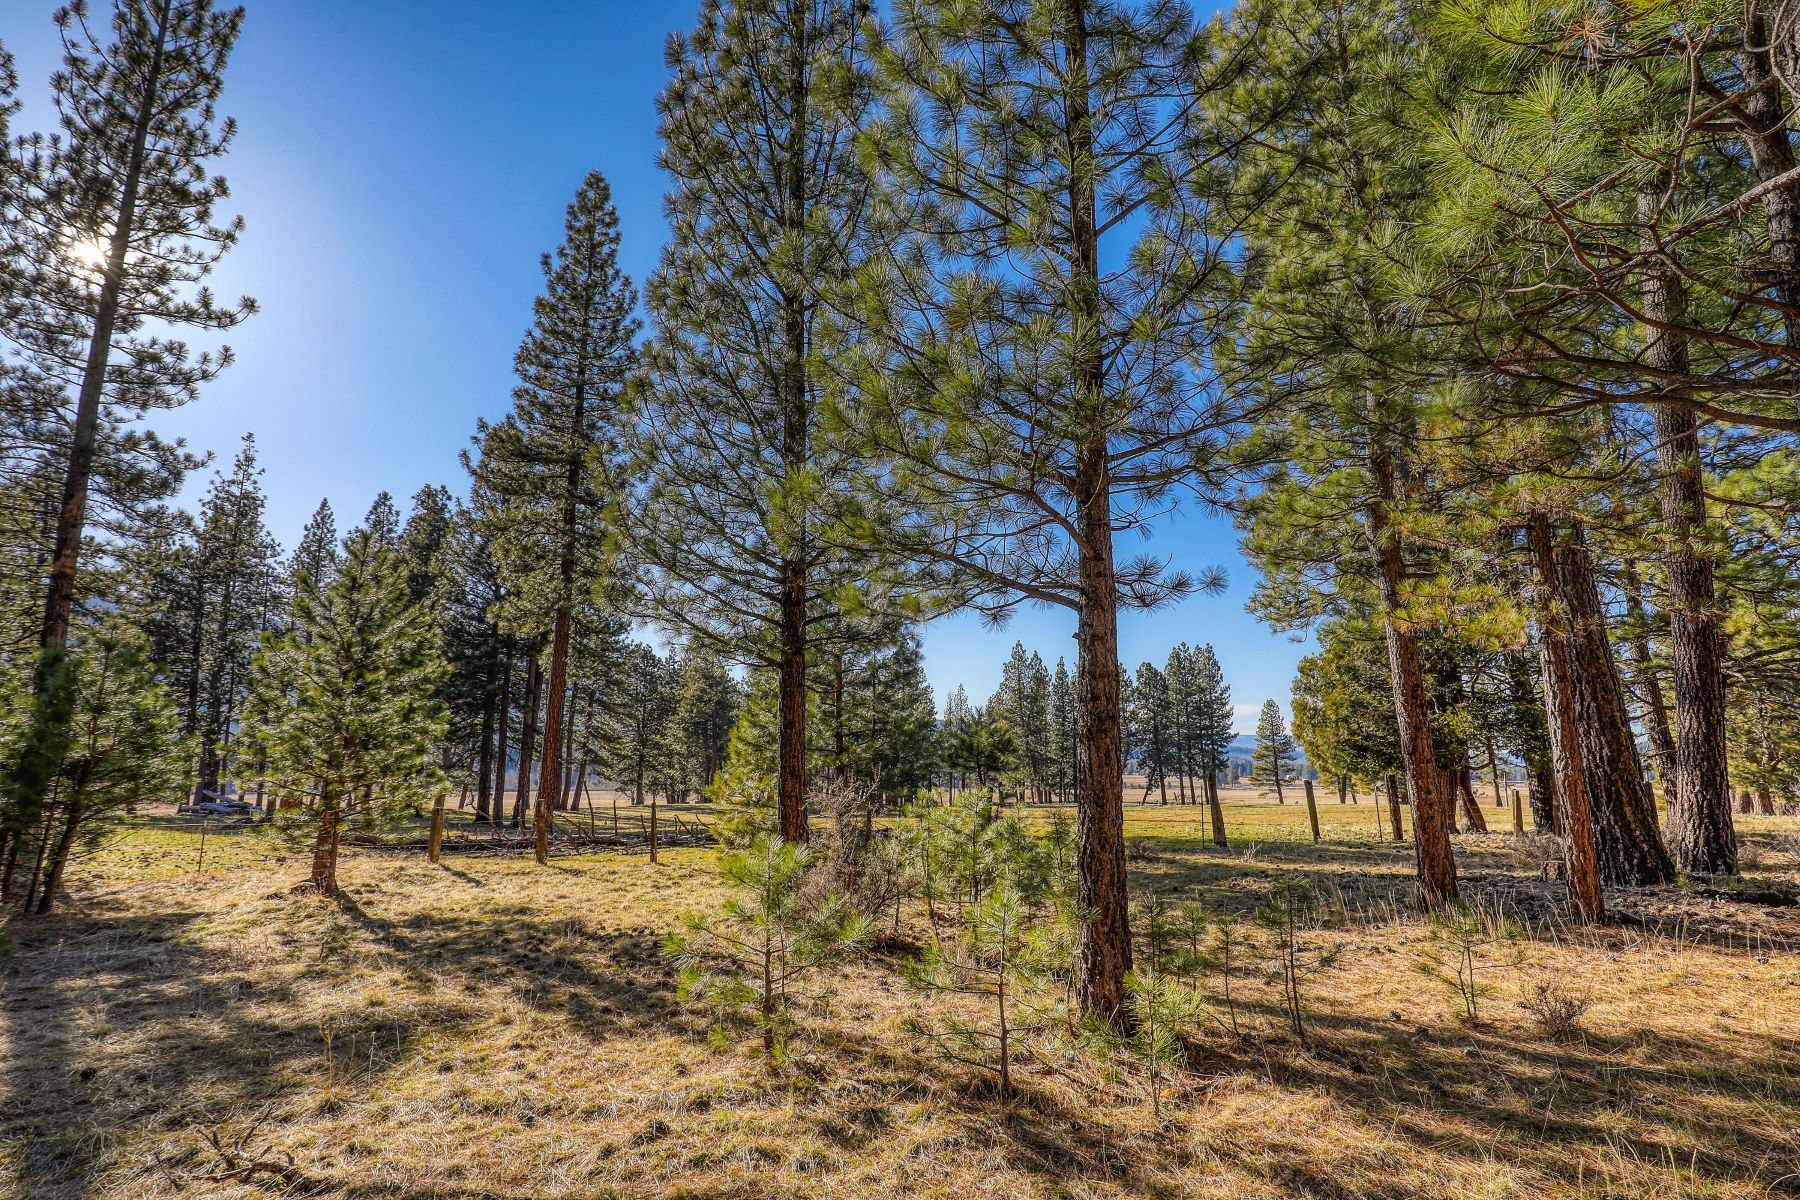 Land for Sale at 709 Redtail Loop Clio California 96106 709 Redtail Loop Clio, California 96106 United States